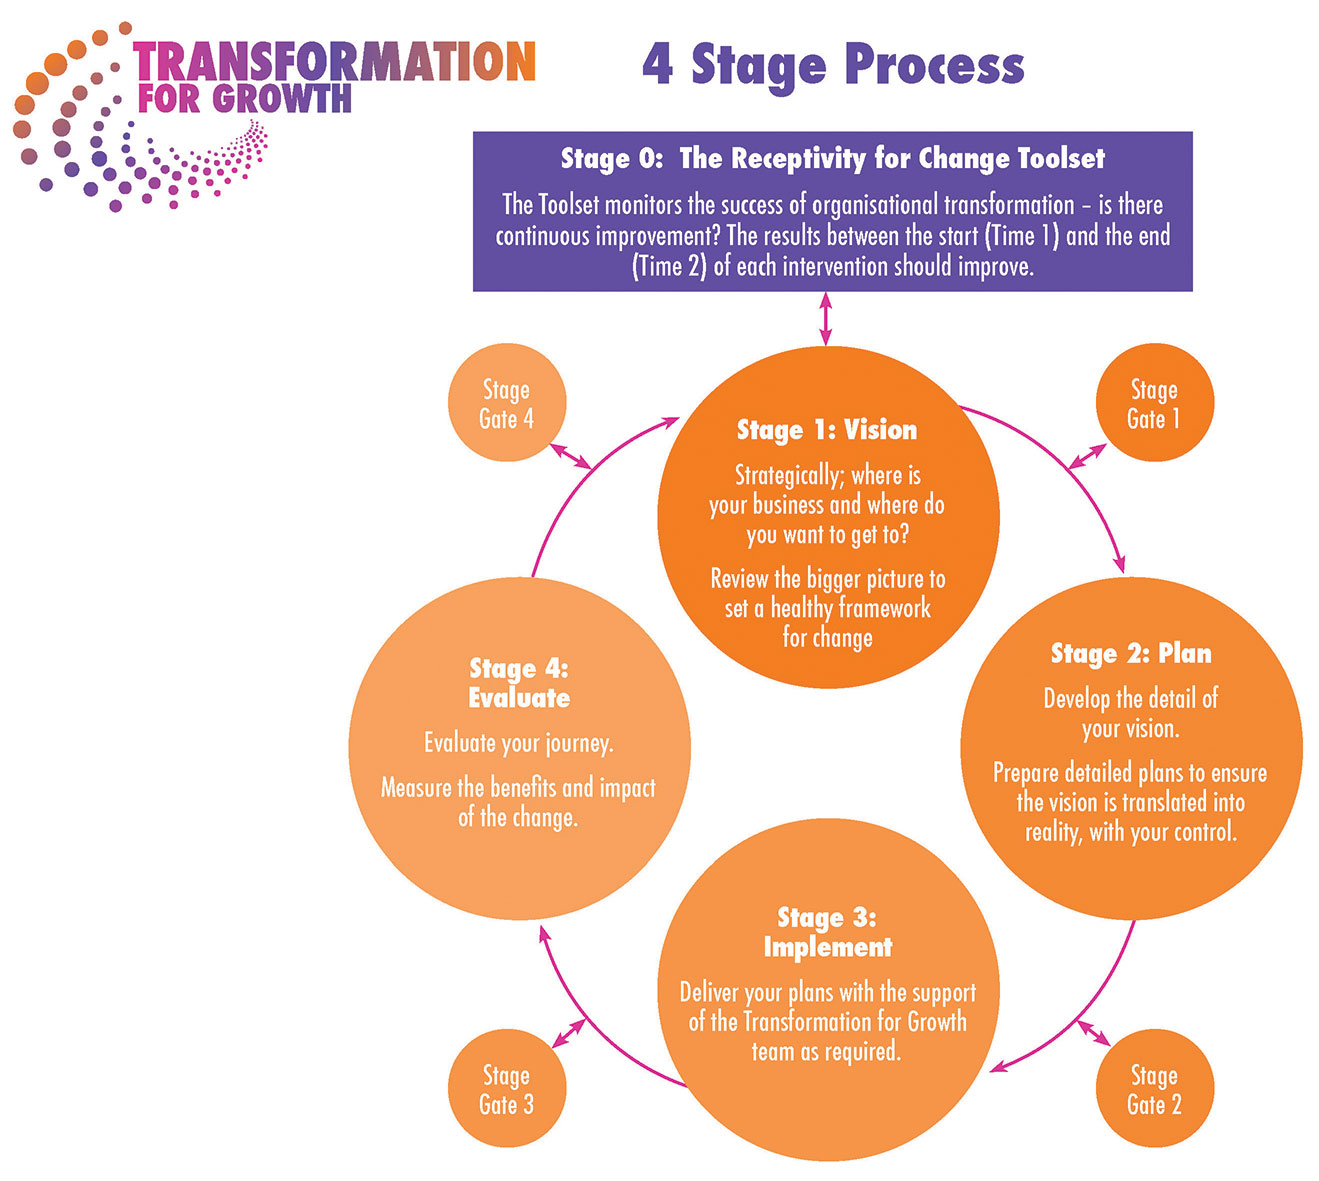 4 Stage Process